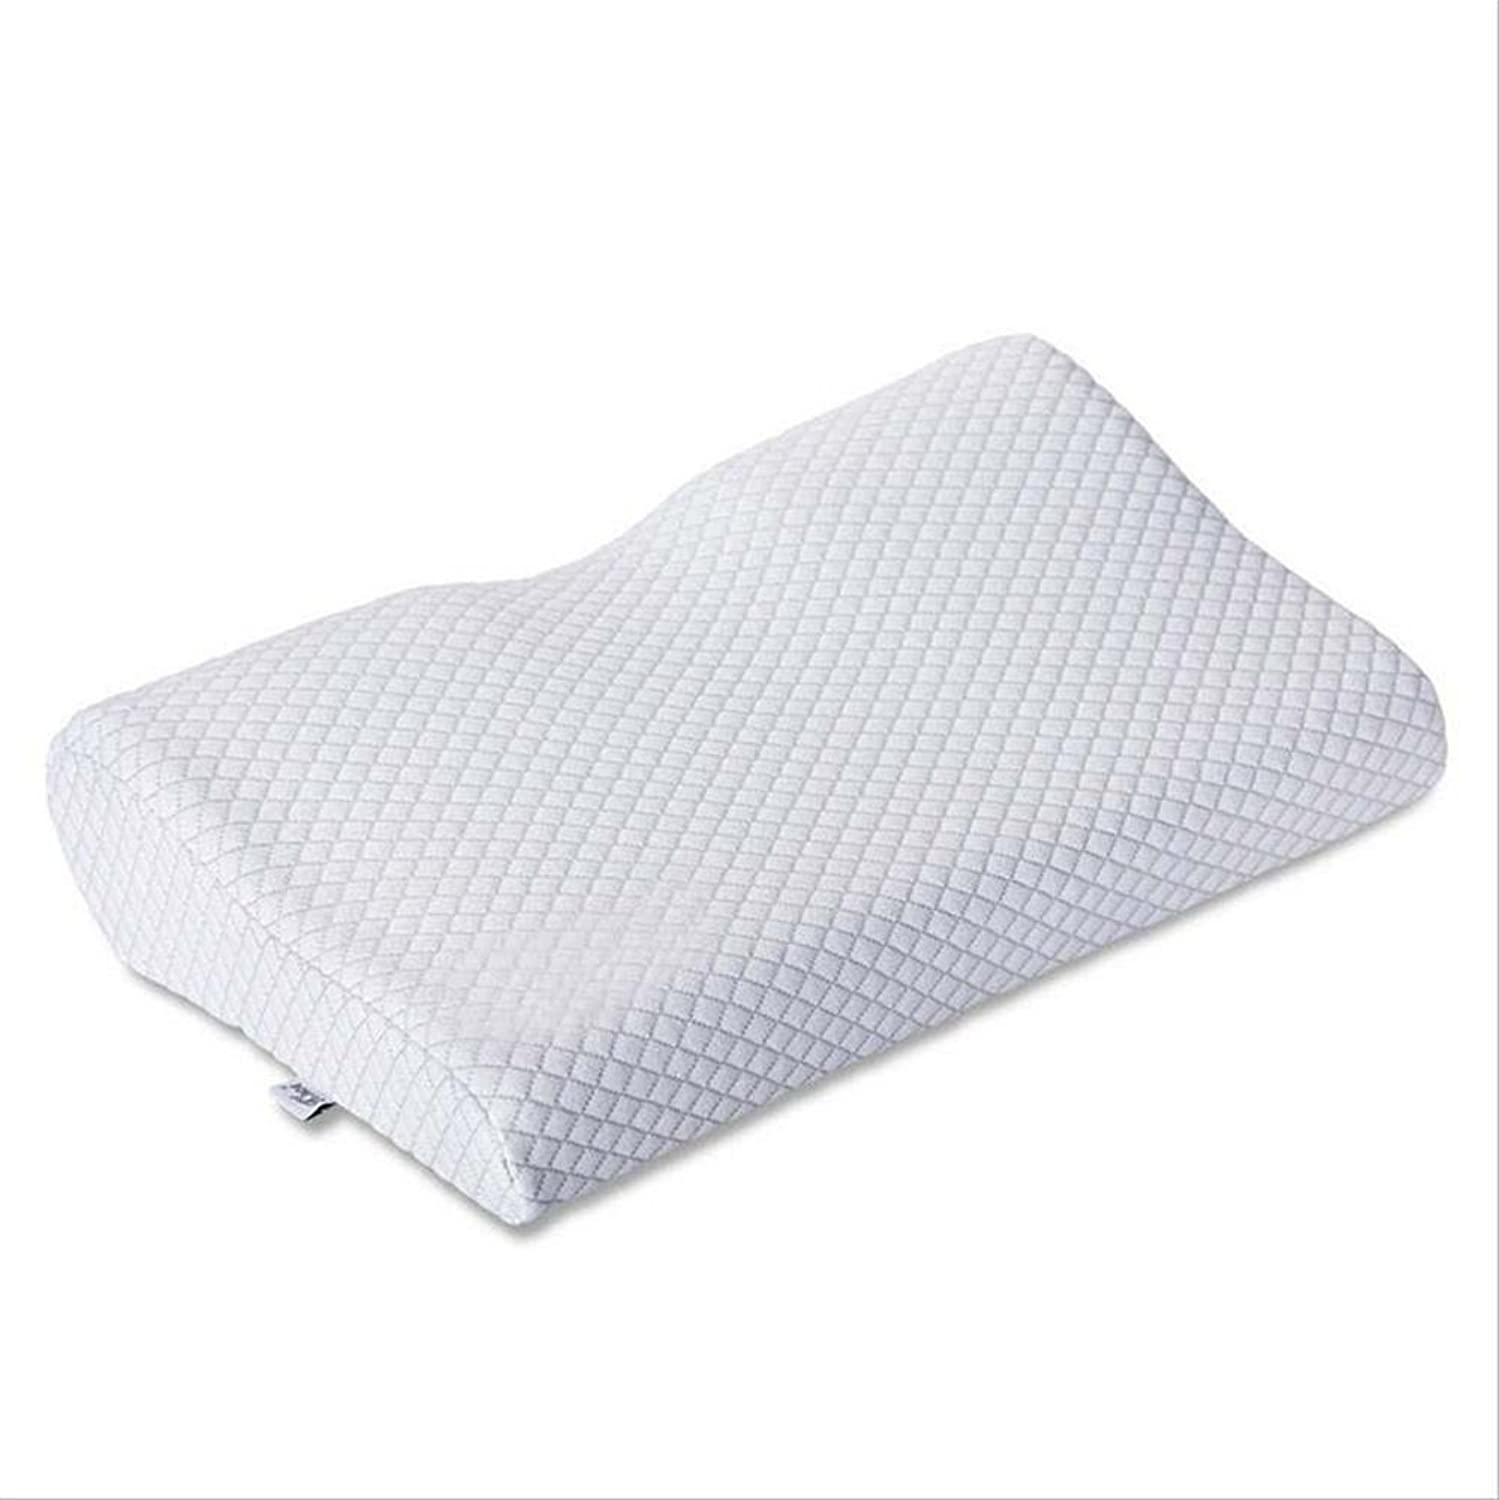 GxNI Cervical Contour Pillow  highest quality memory foam, comfort neck with adjustable padNatural magnet health pillow, white